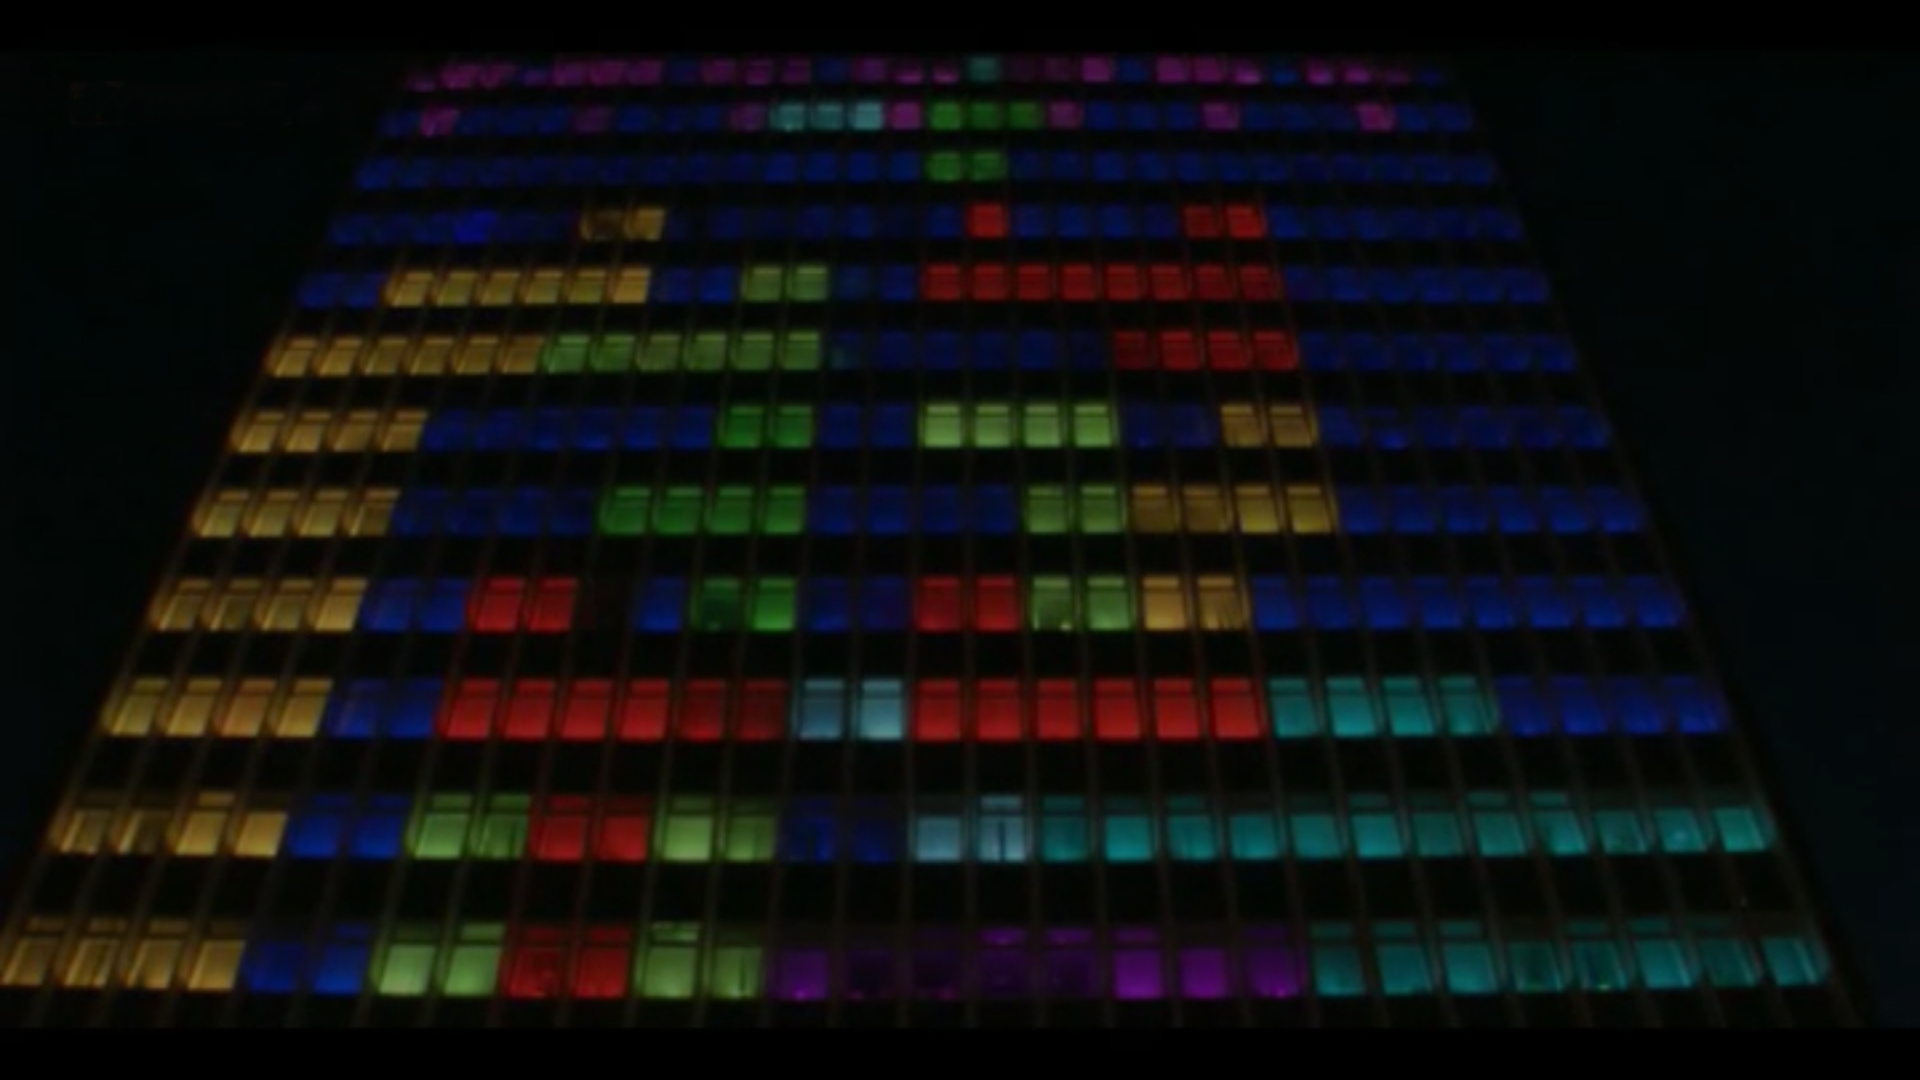 Germania: tetris con un palazzo (Video)